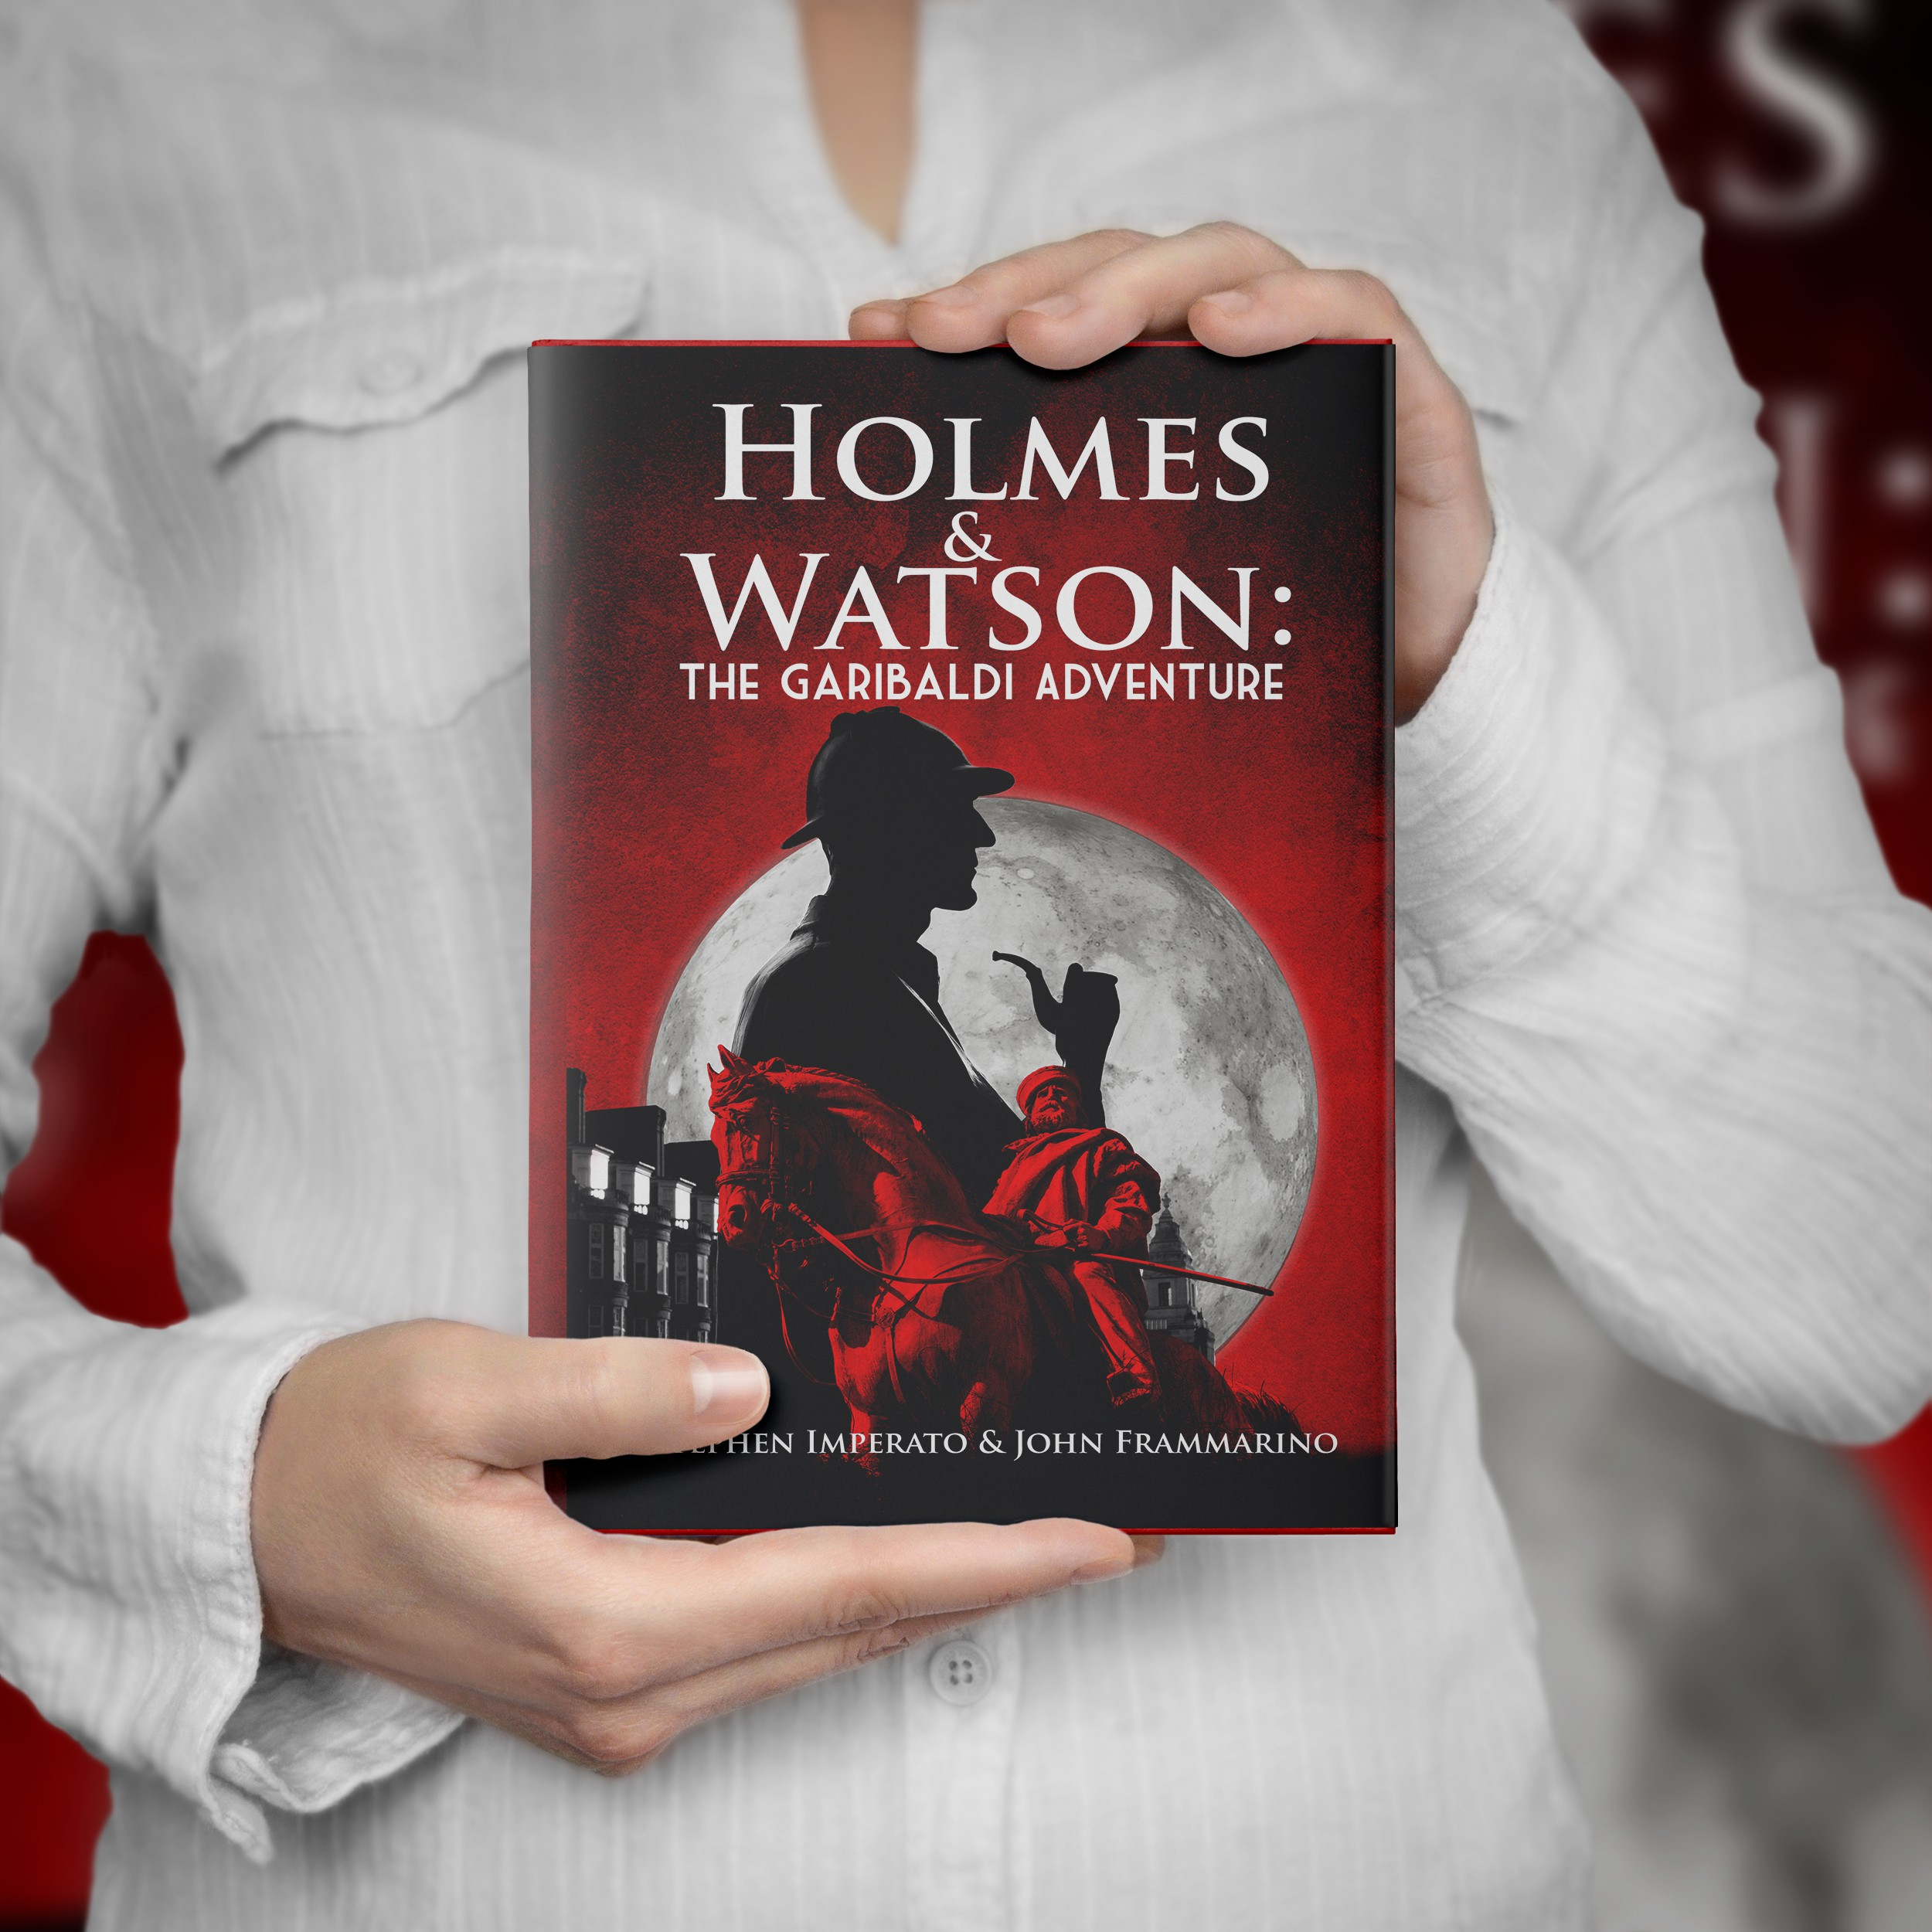 Dynamic Cover Image for Sherlock Holmes Action Adventure book